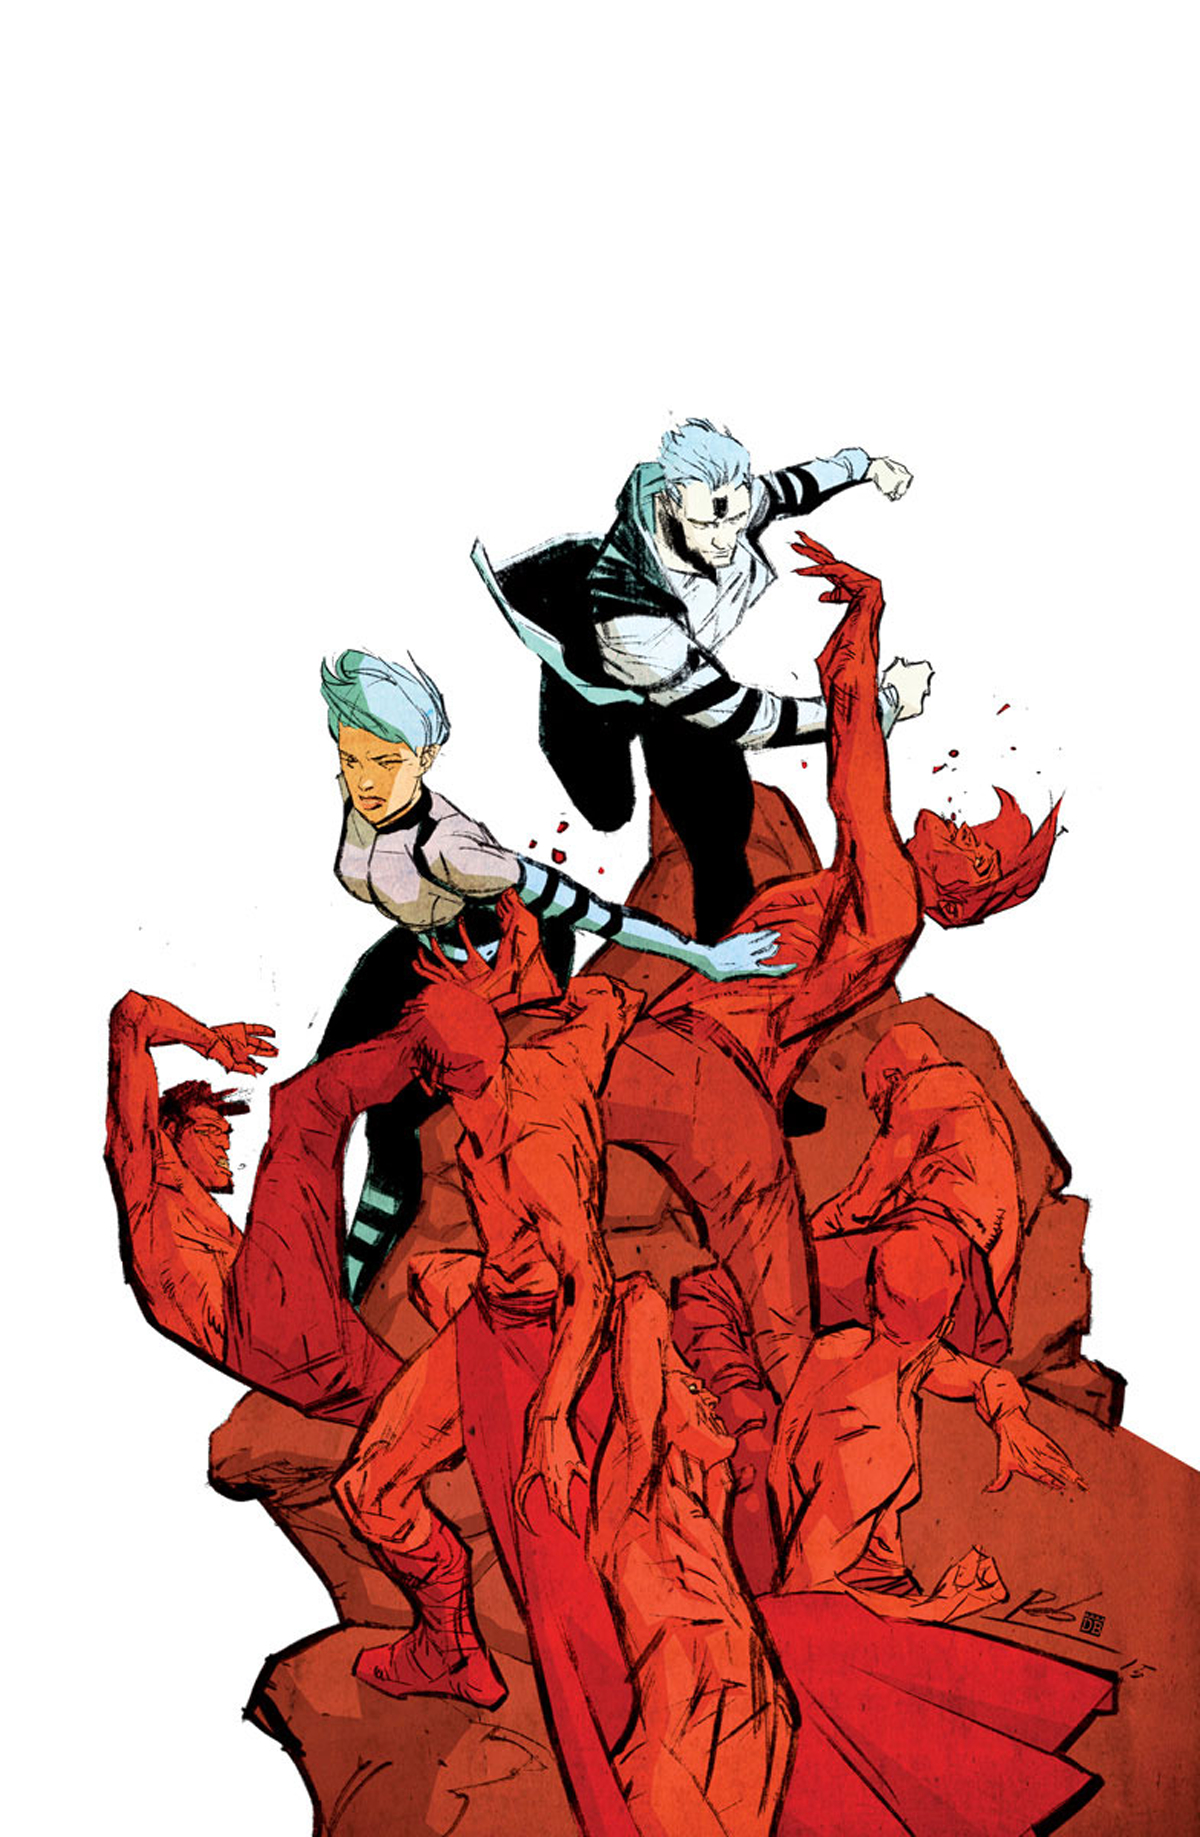 DR MIRAGE SECOND LIVES #2